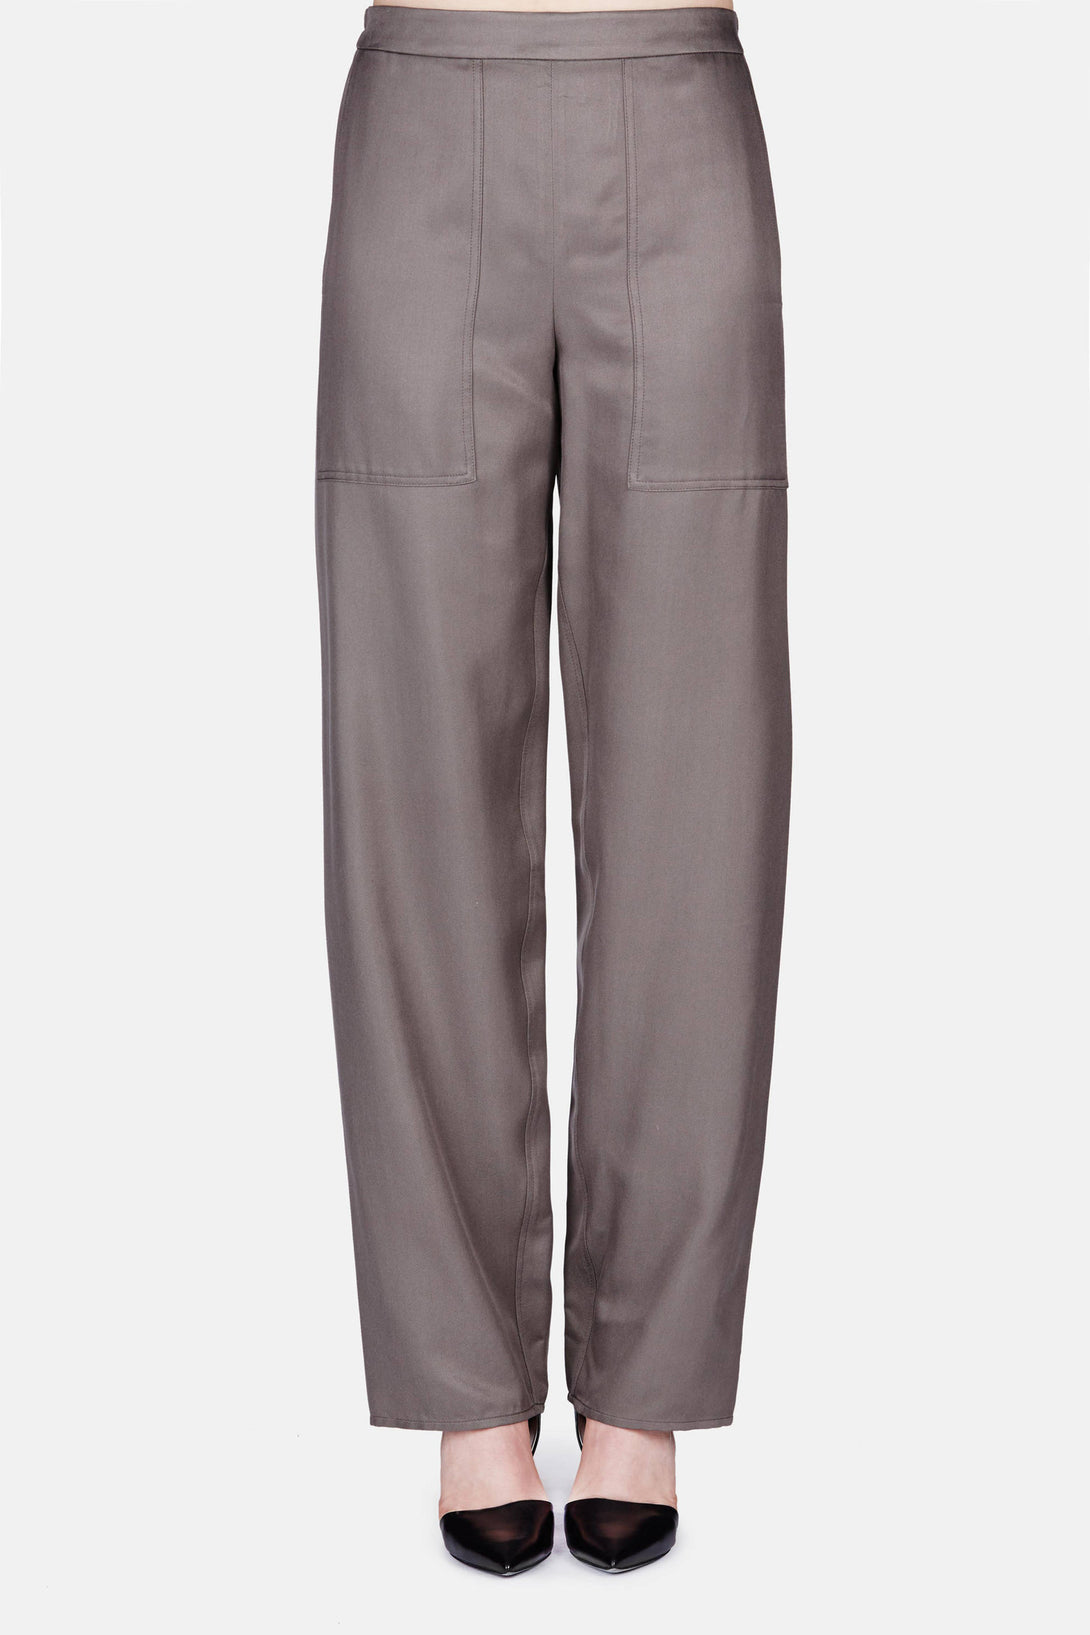 Elasticated Pants - Olive Grey